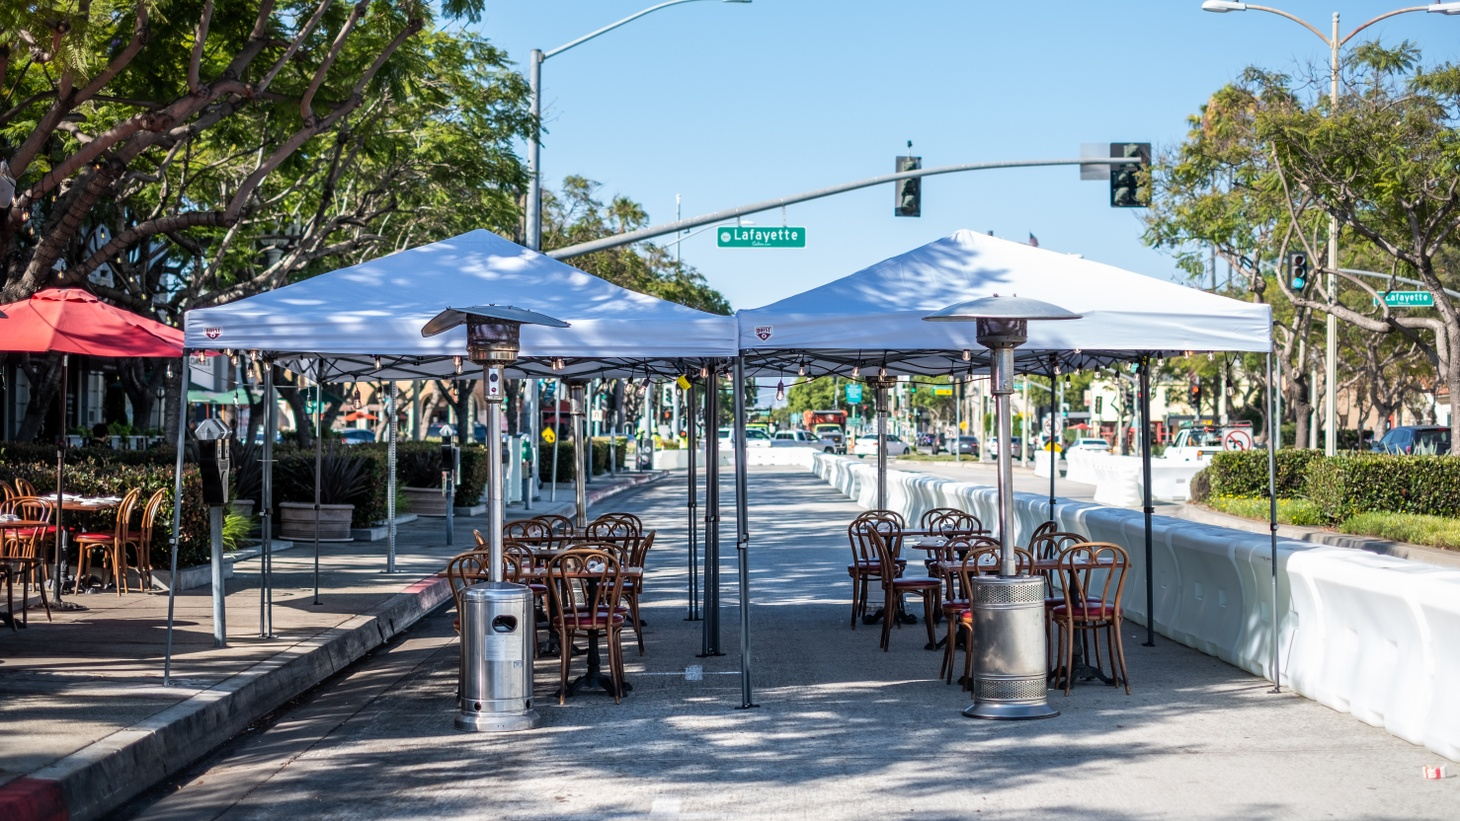 Many restaurants in downtown Culver City have set up dining tables on sidewalks and roads.